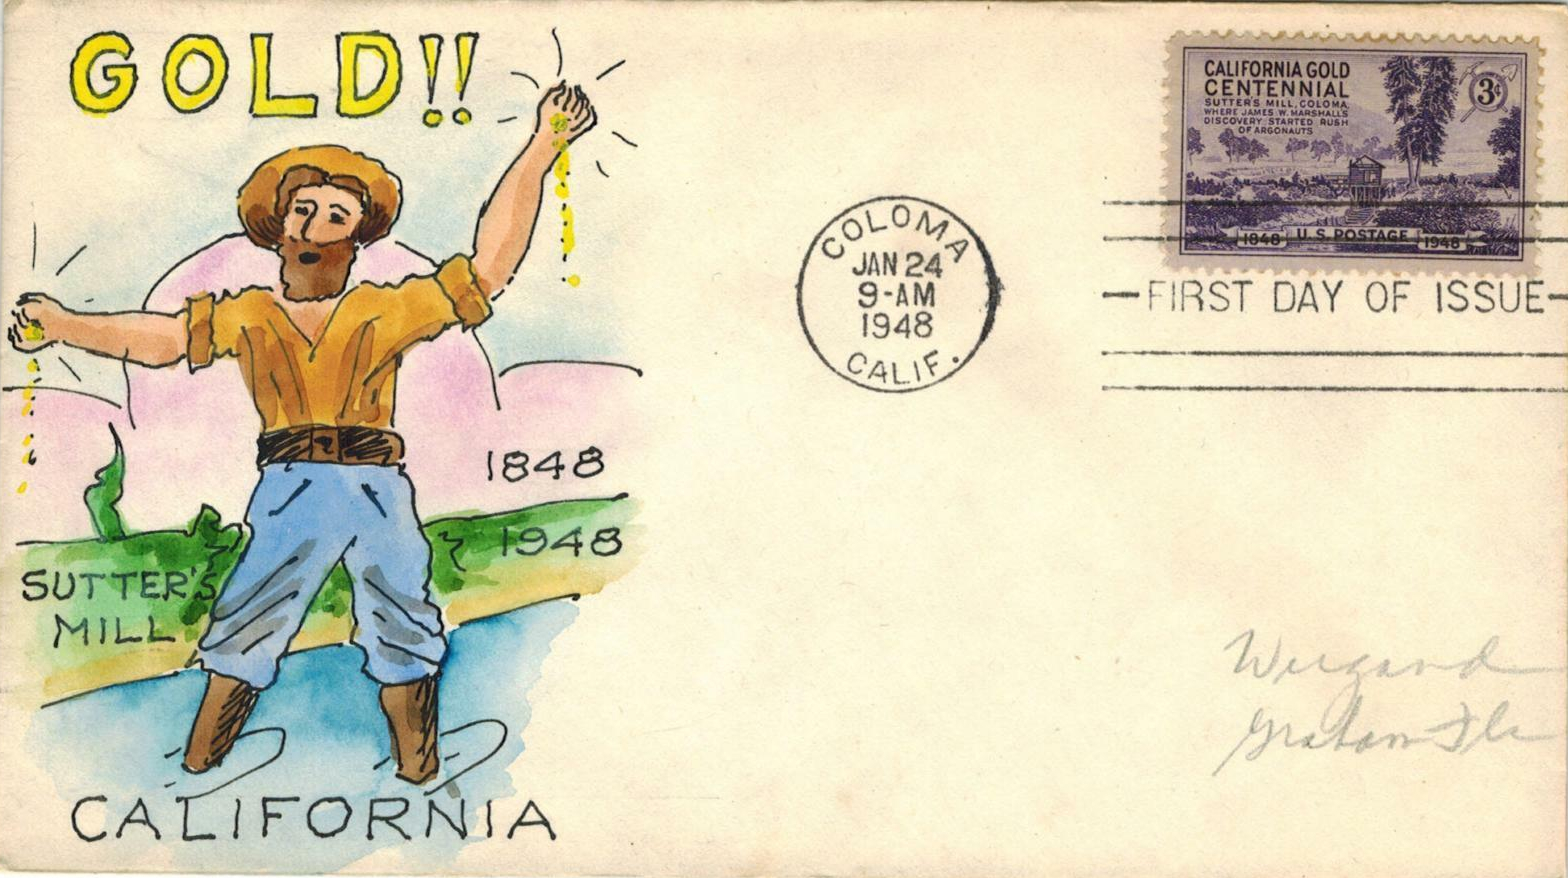 United States - Scott #954 (1948) first day cover, Coloma CA postmark